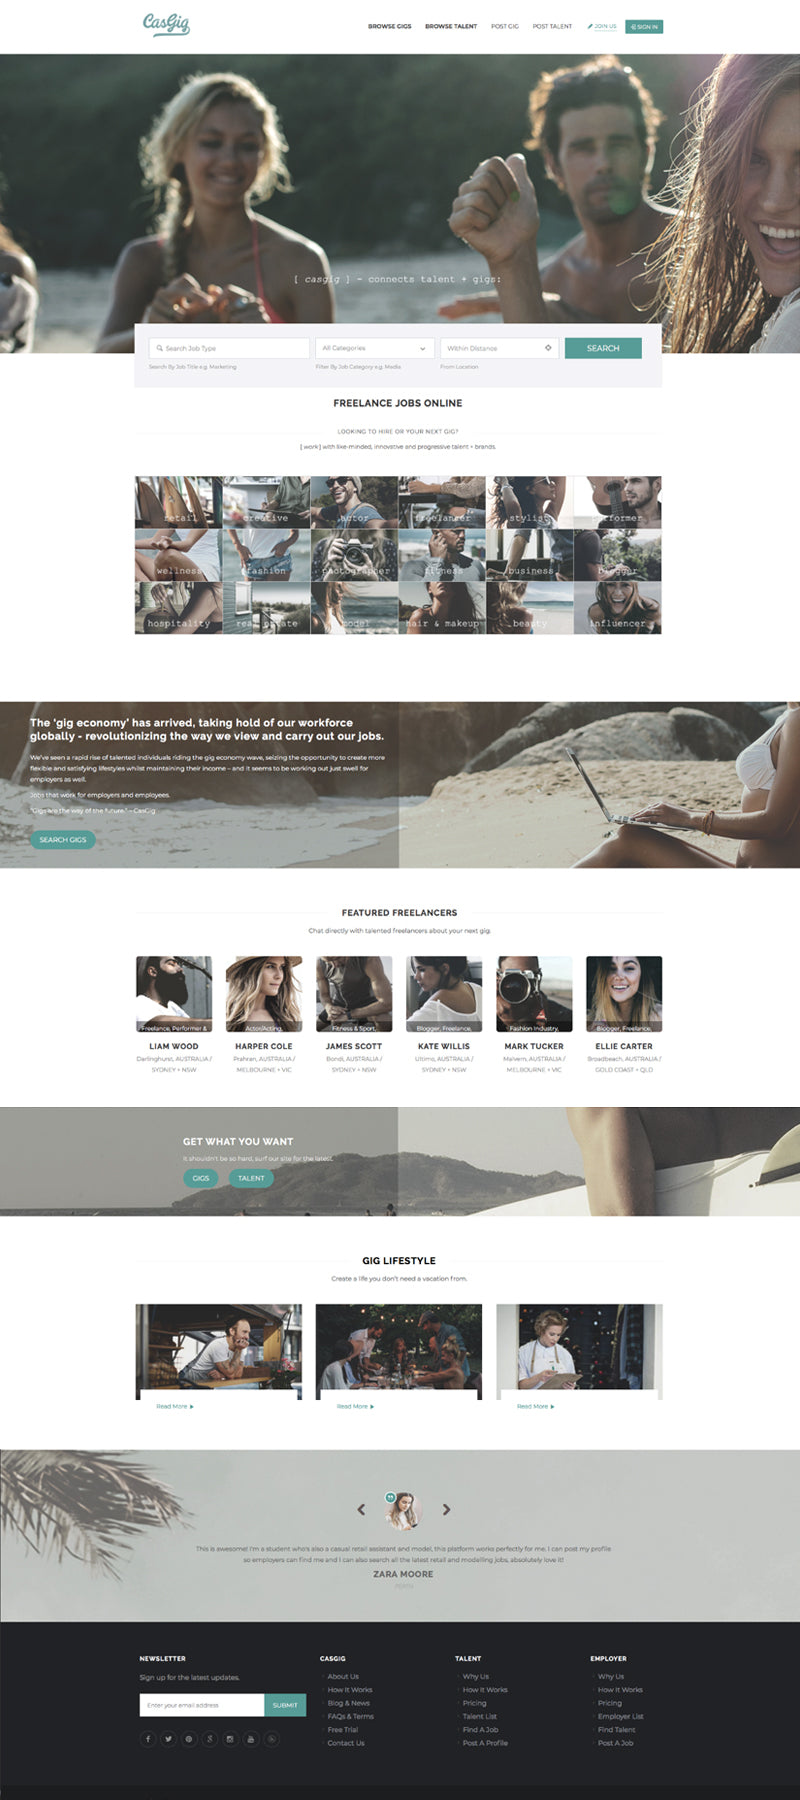 ed-it.co custom branding and website design and content